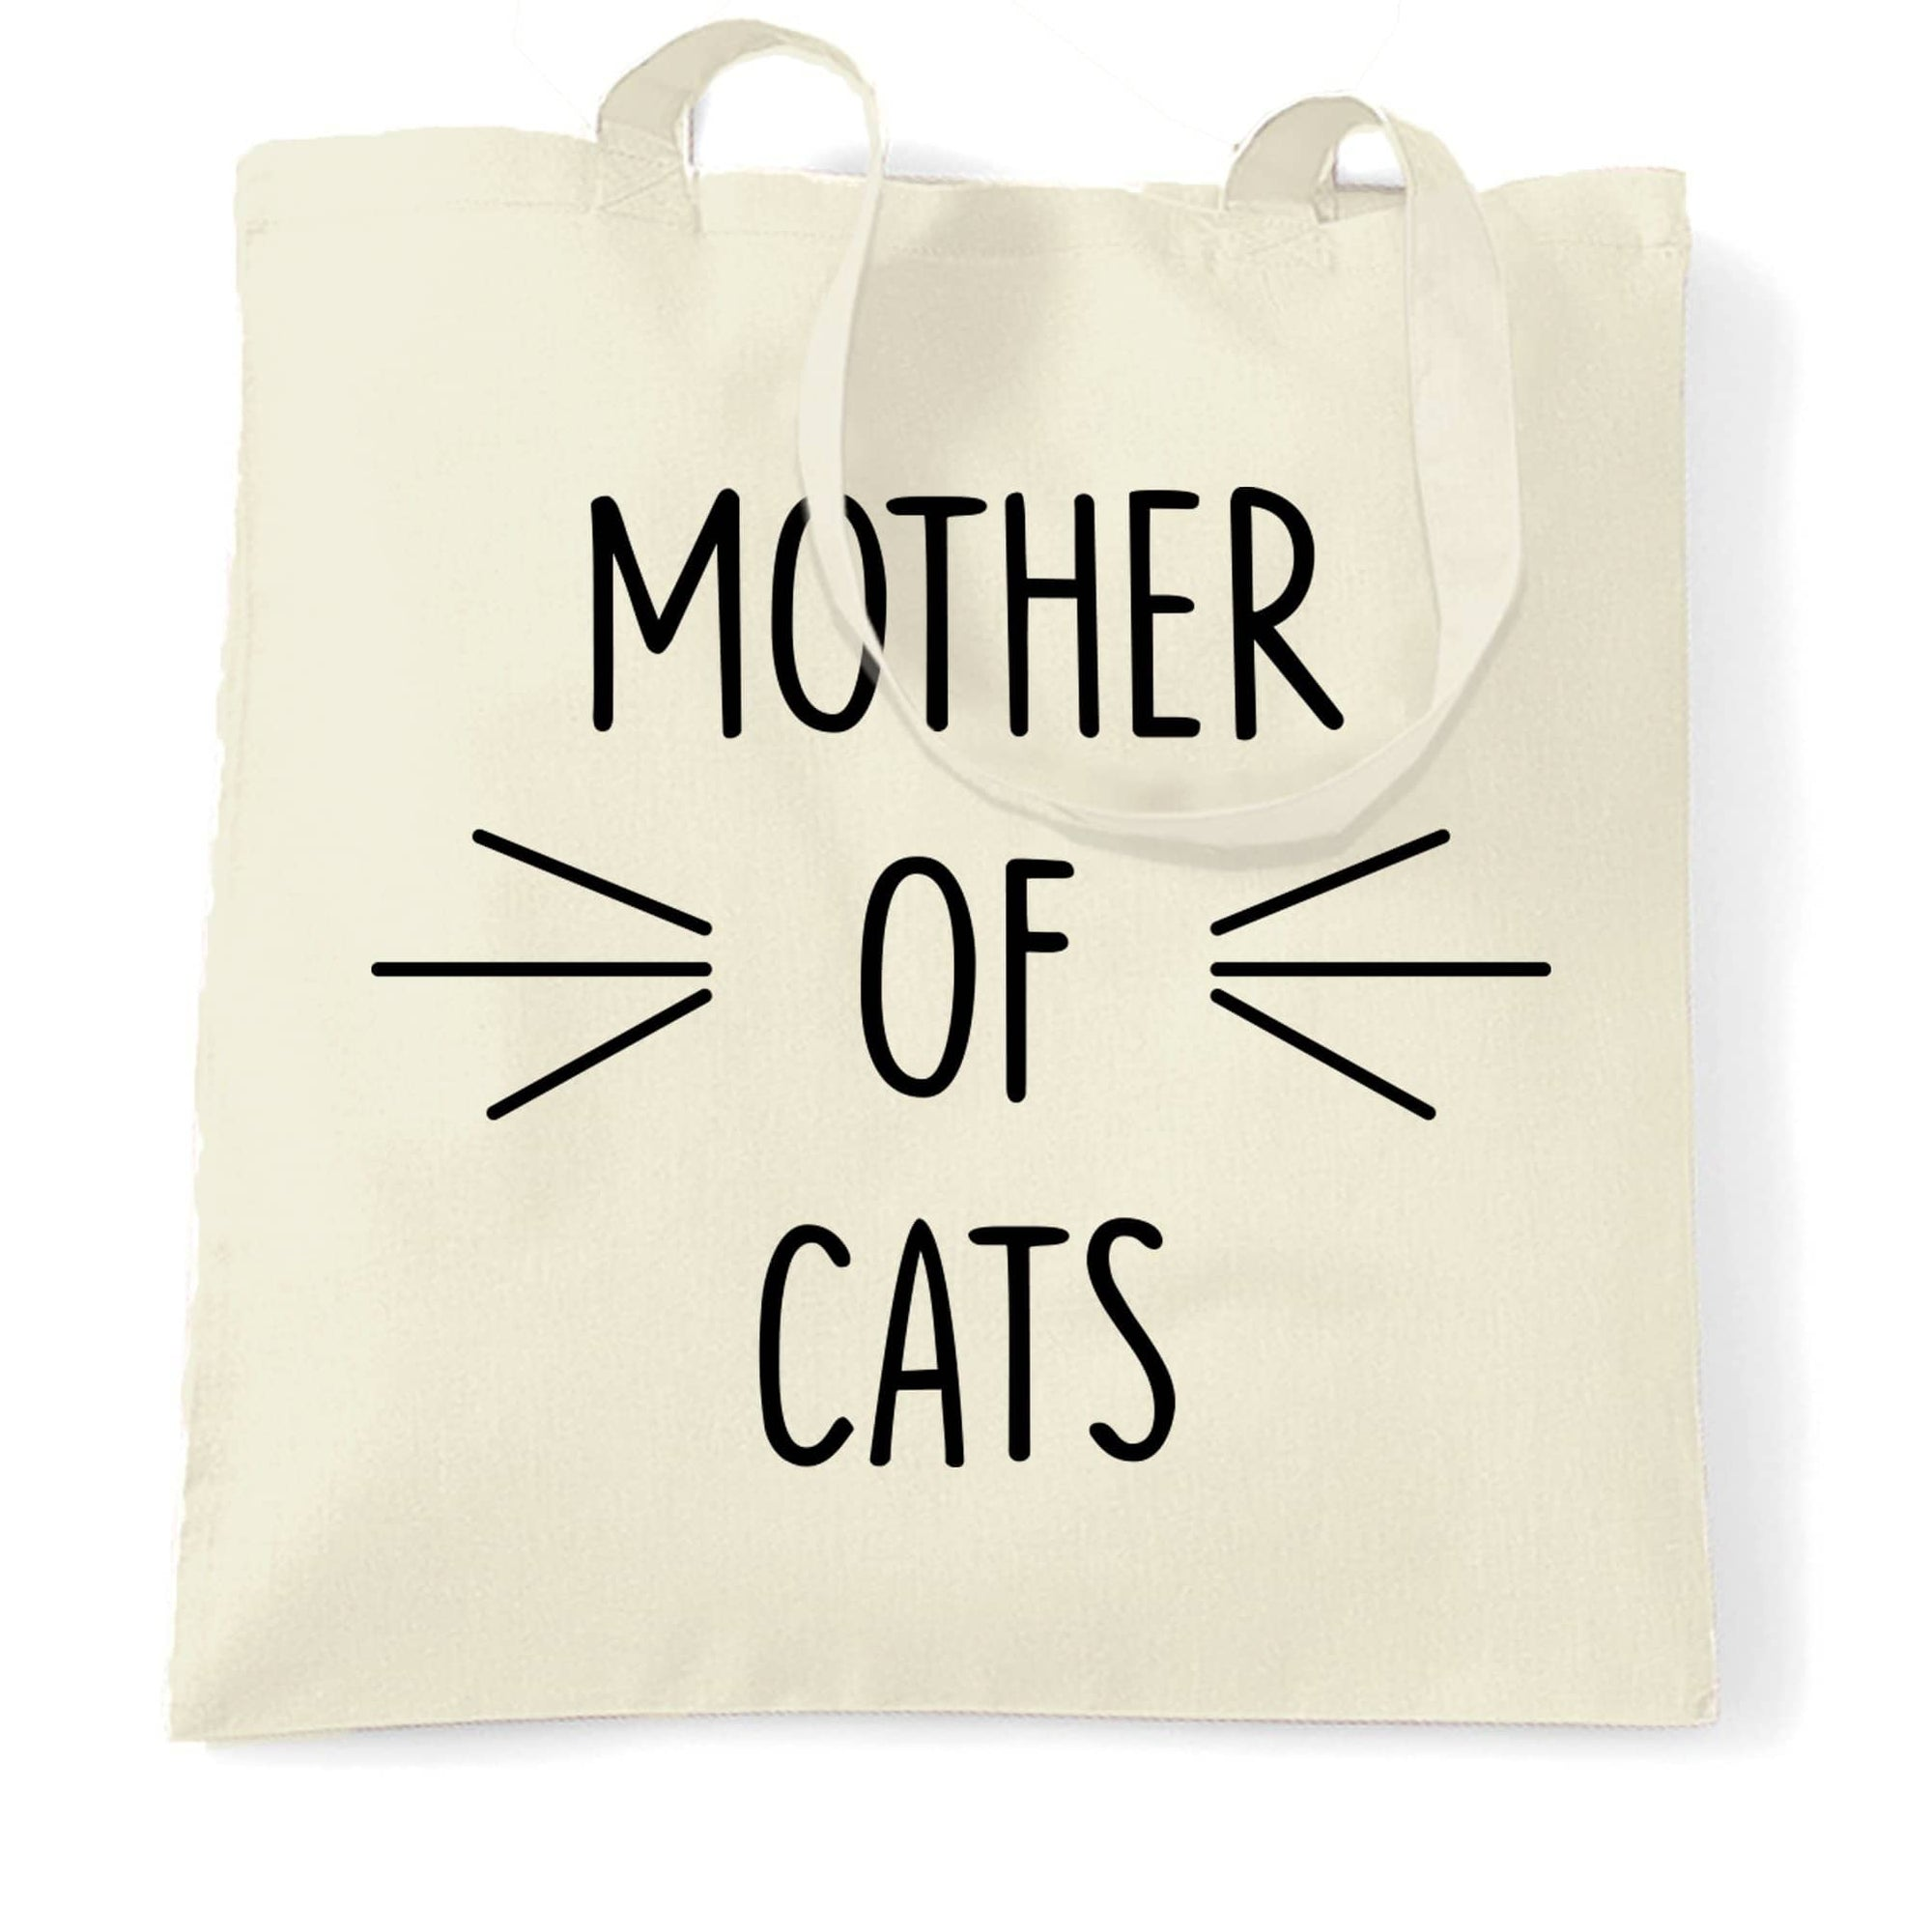 Funny Pet Tote Bag Mother Of Cats Novelty Slogan